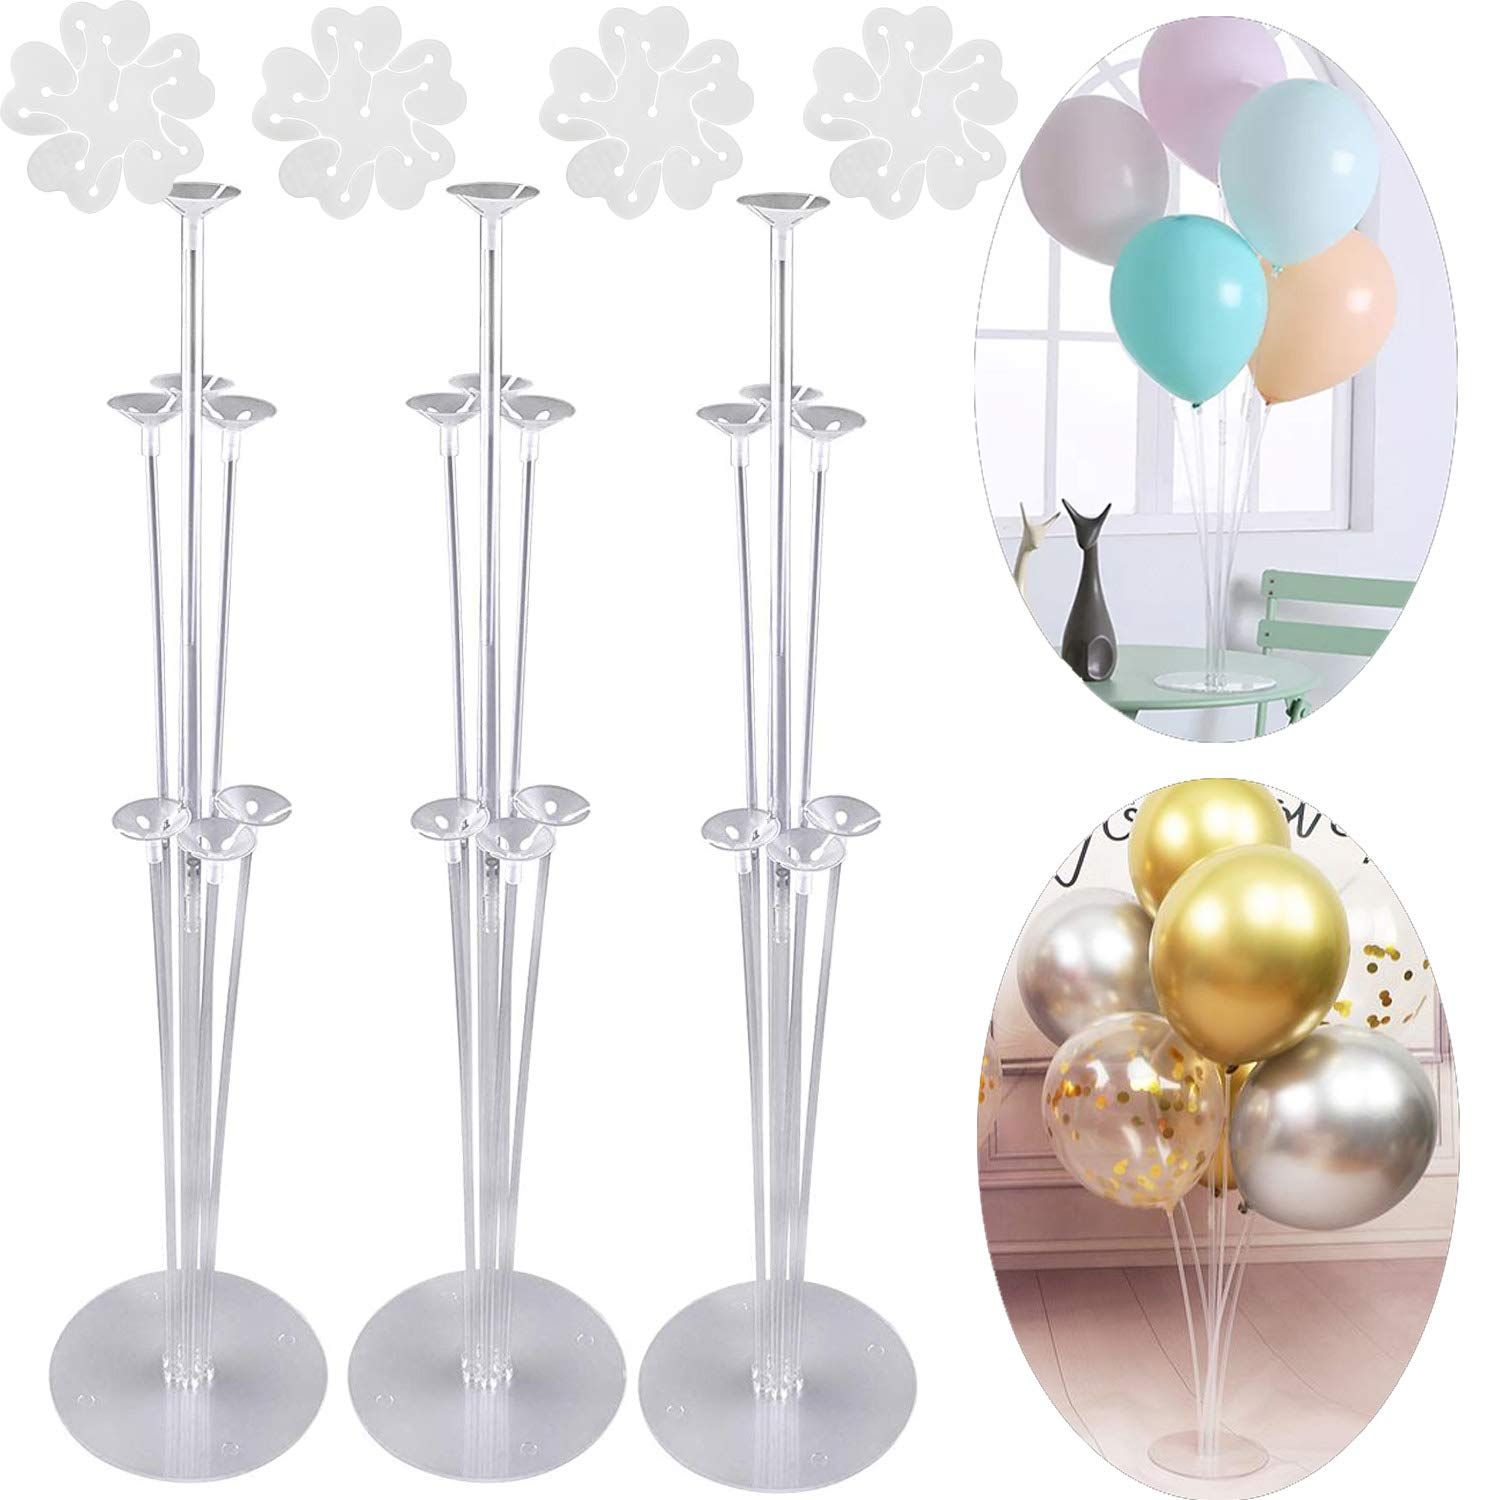 3 Sets Balloon Stand Holder Kit with 7 Sticks 7 Cups and 1 Base - Table Desktop Centerpiece Decorations for Wedding Birthday Baby Shower Party